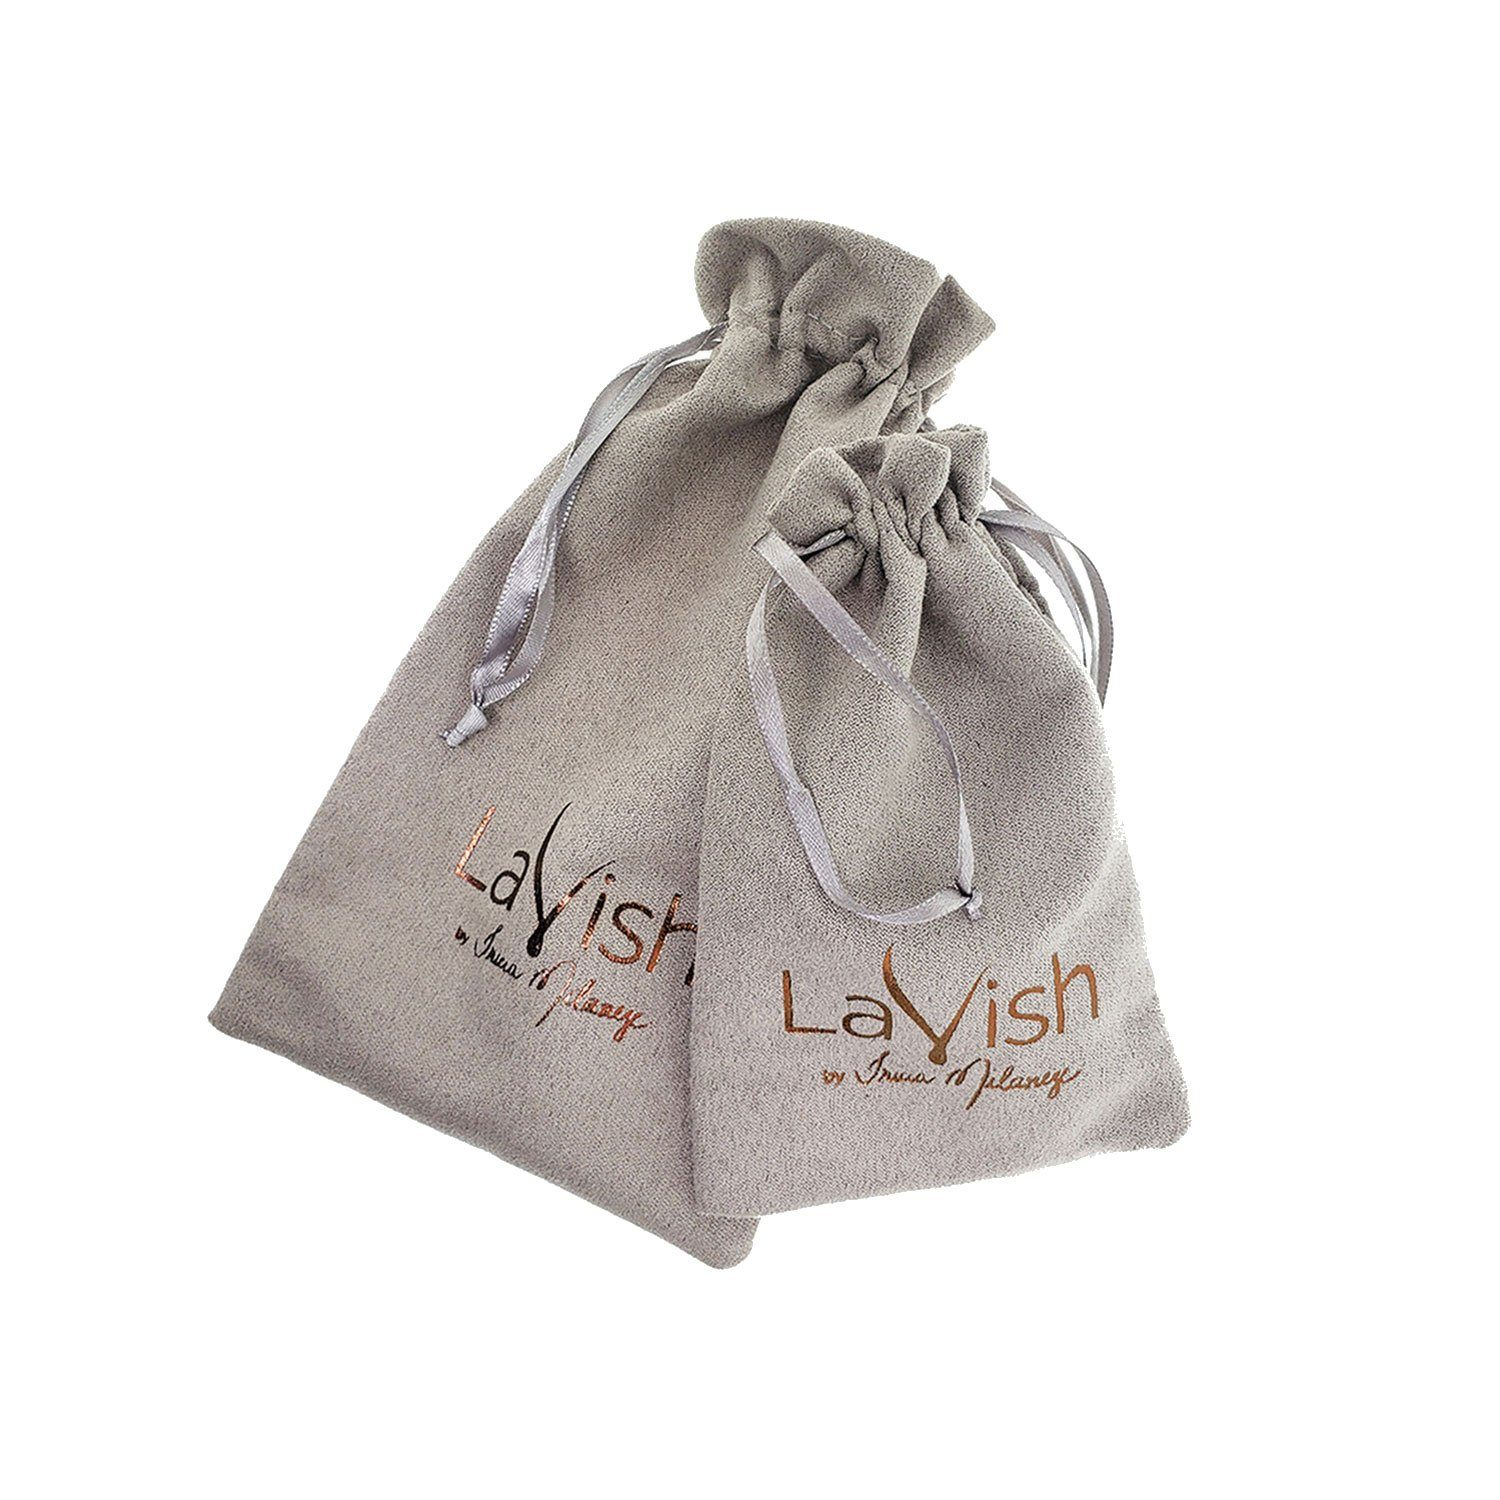 2 Grey velvet jewelry pouches with lavish logo